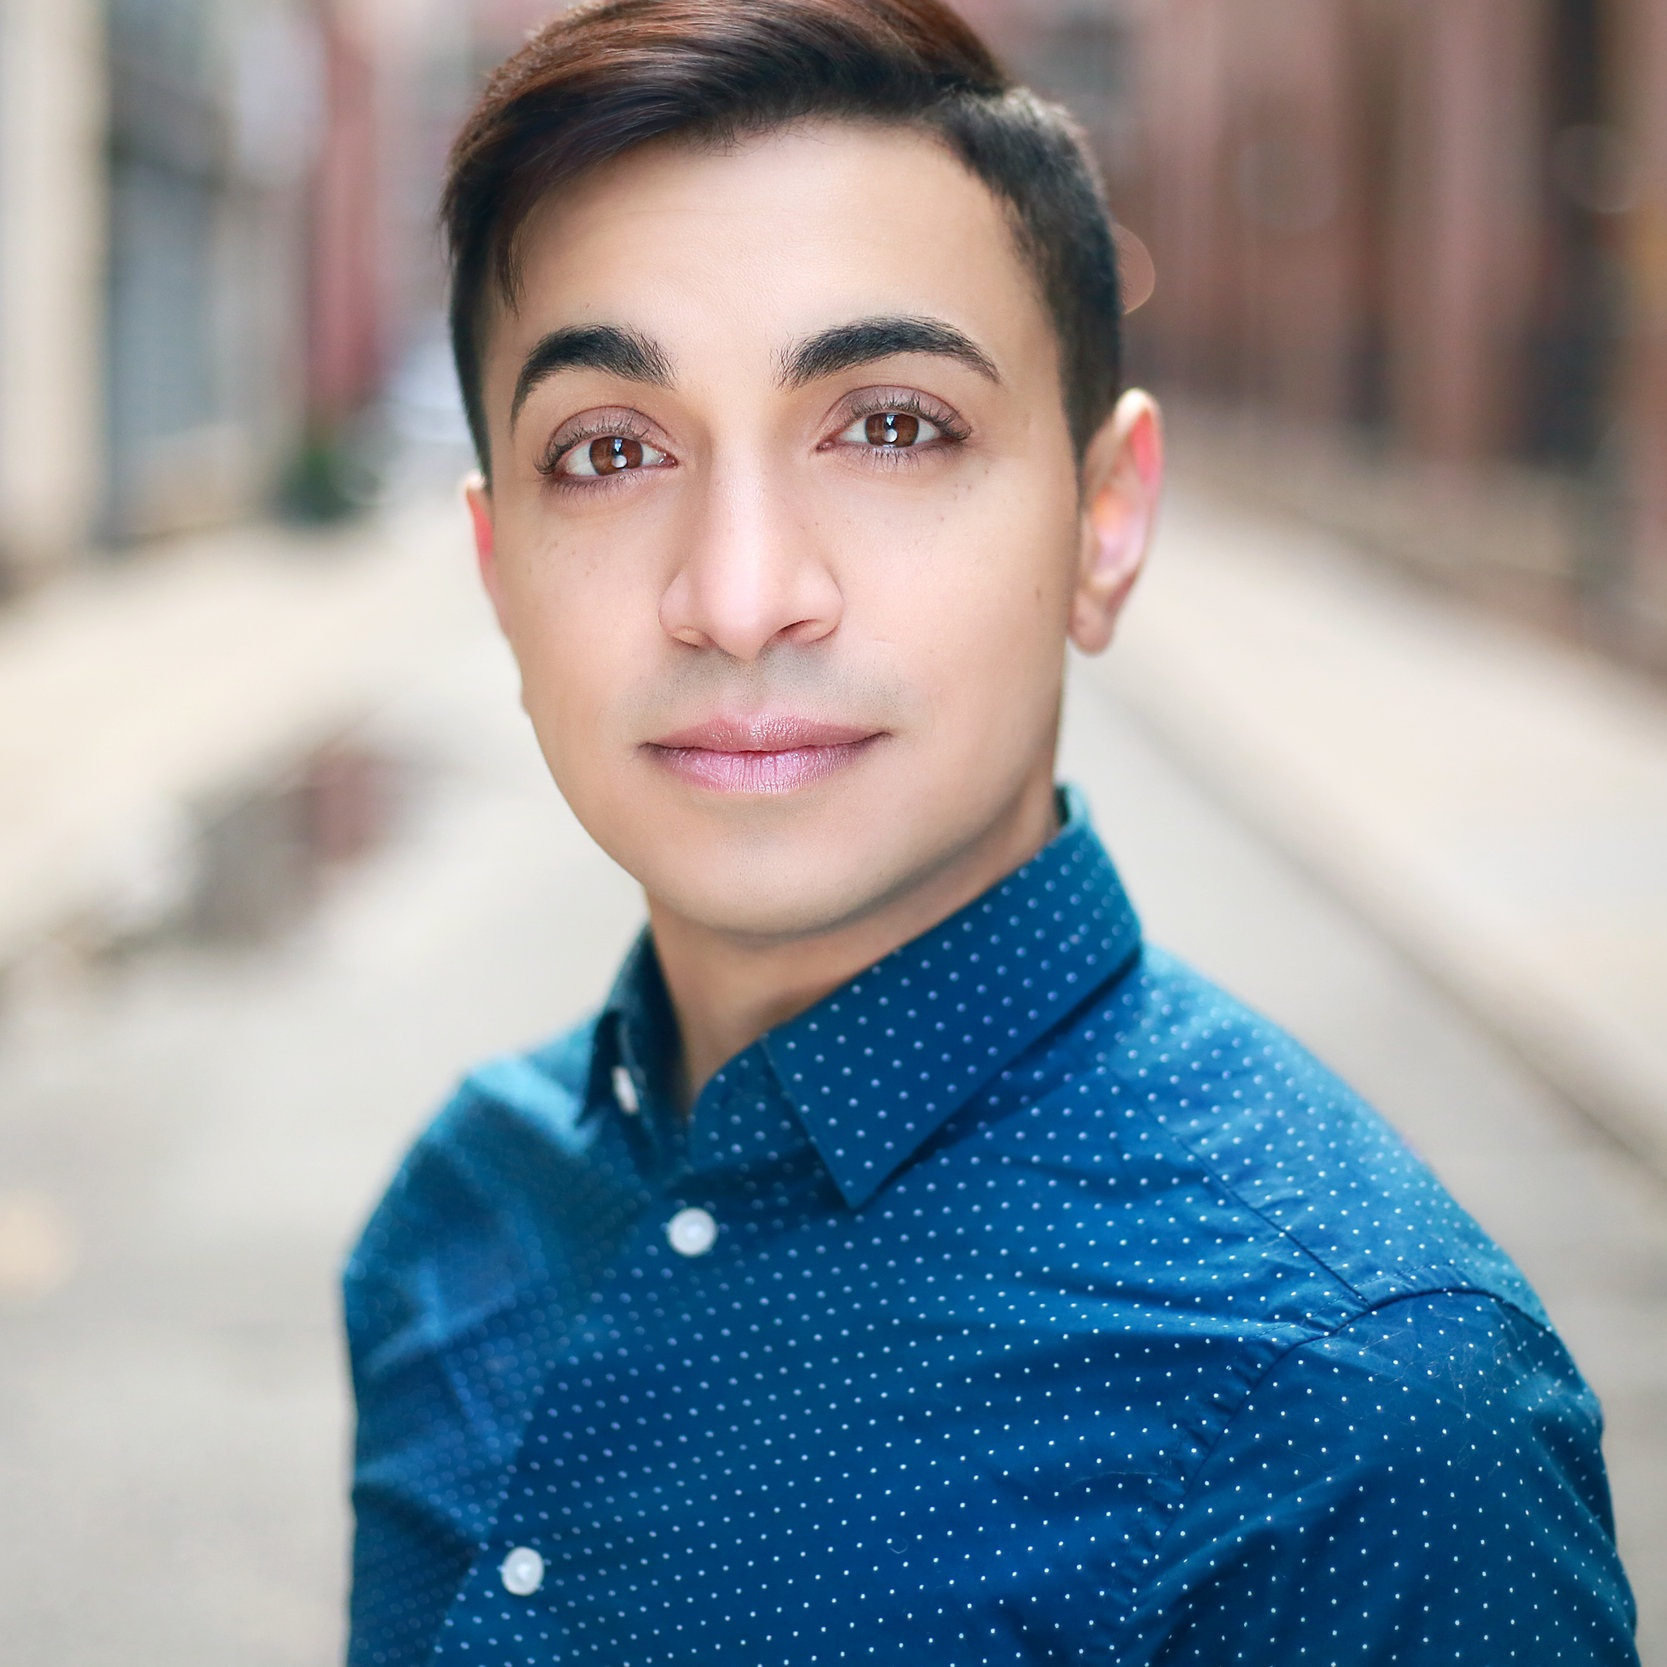 SAMY NOUR YOUNES - (HE/HIM, THEY/THEM) IS A LEBANESE/BORICUA ACTOR AND ACTIVIST WHO AIMS TO HIGHLIGHT THE DIVERSITY OF THE TRANS EXPERIENCE.